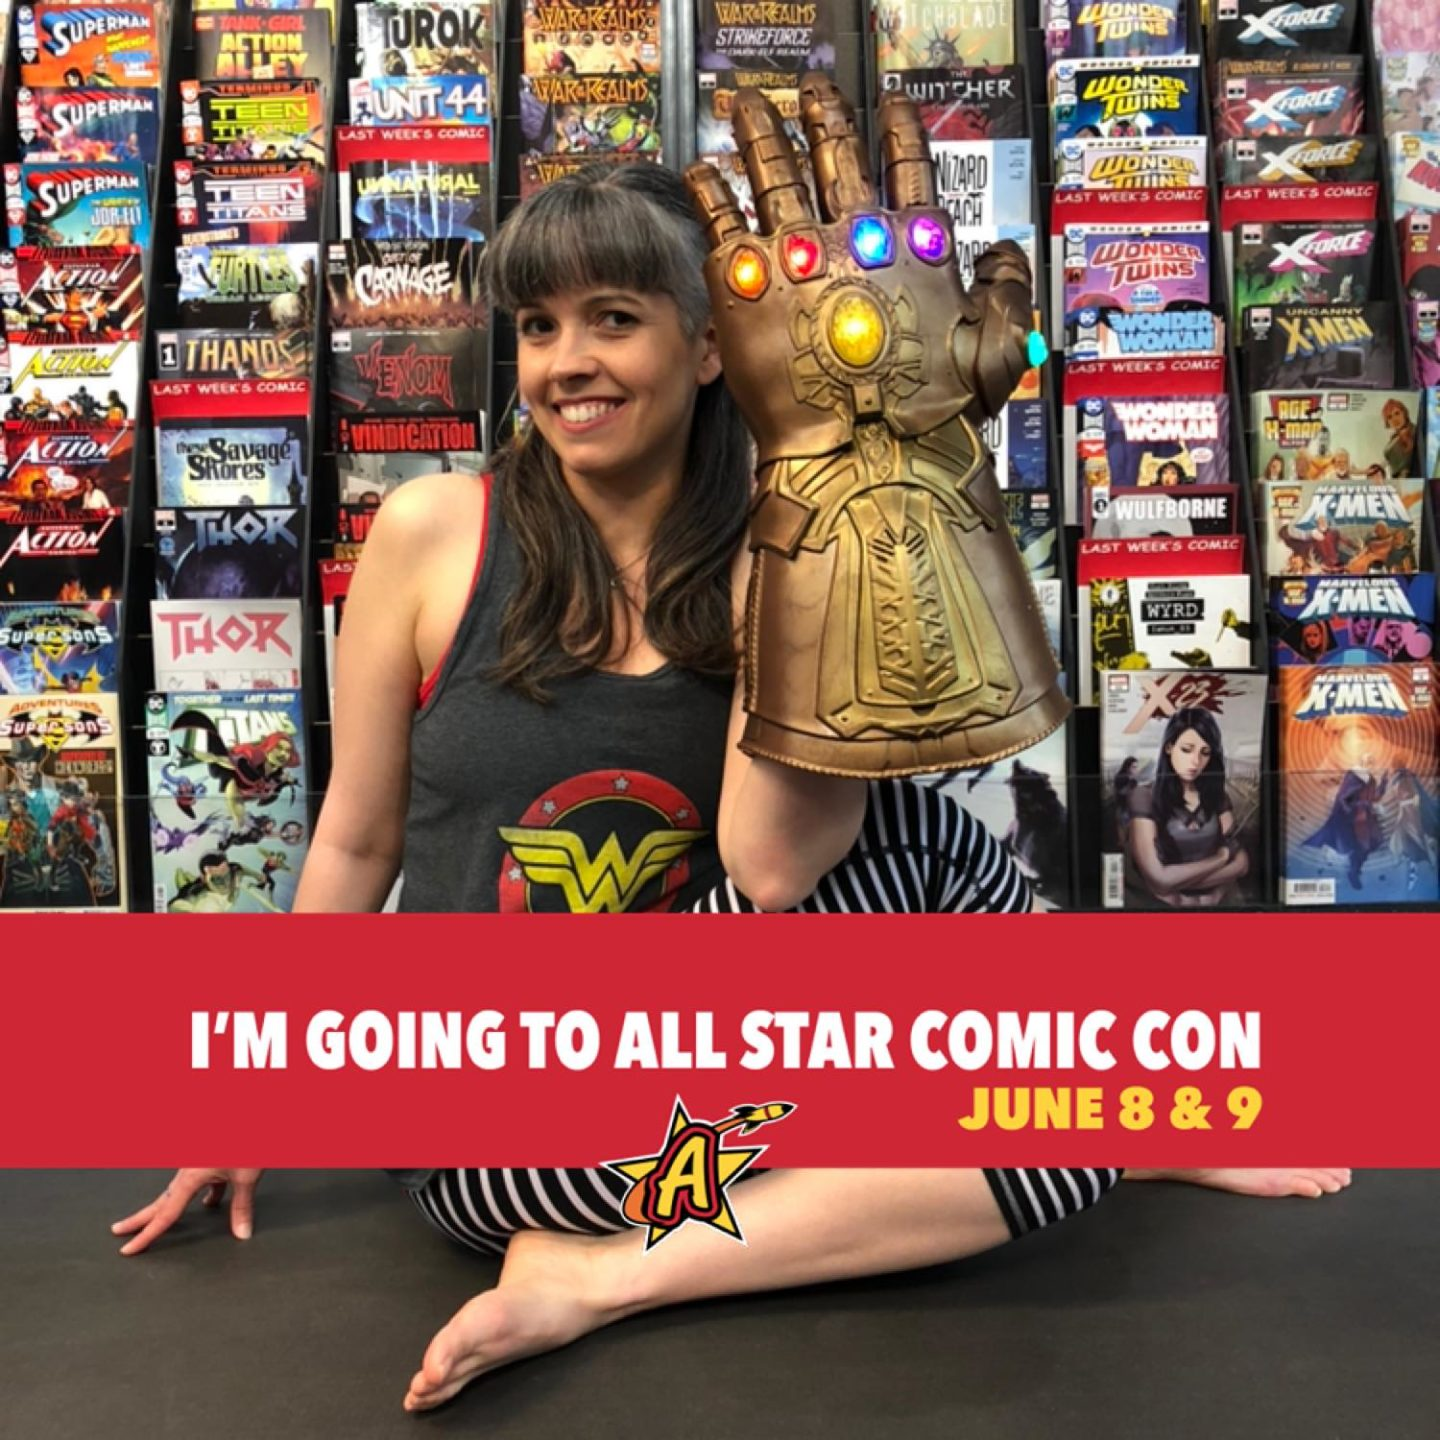 All Star Comic Con 2019